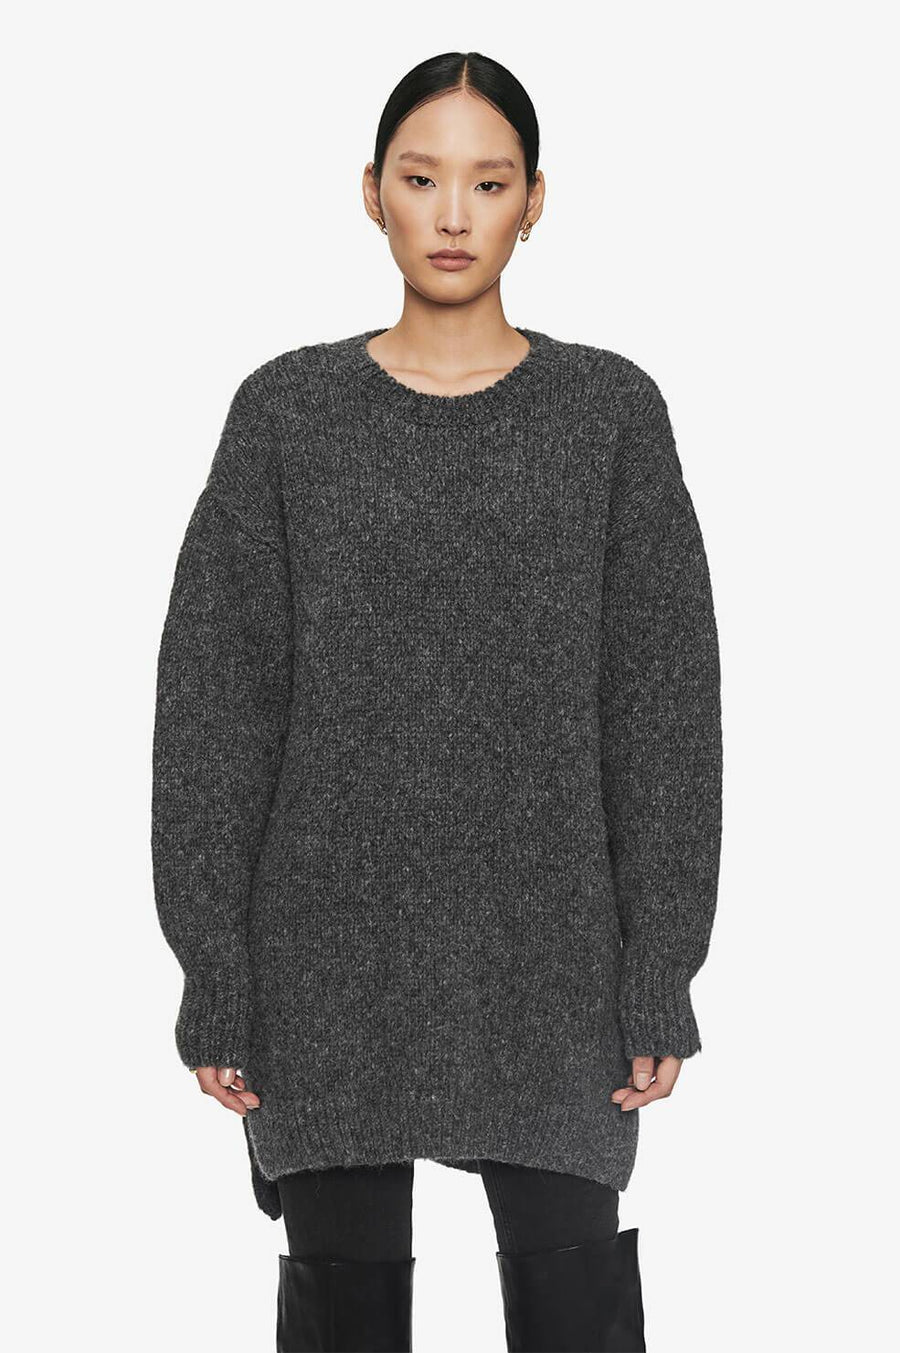 Anine Bing Kyle Sweater Dress in Charcoal Grey from The New Trend